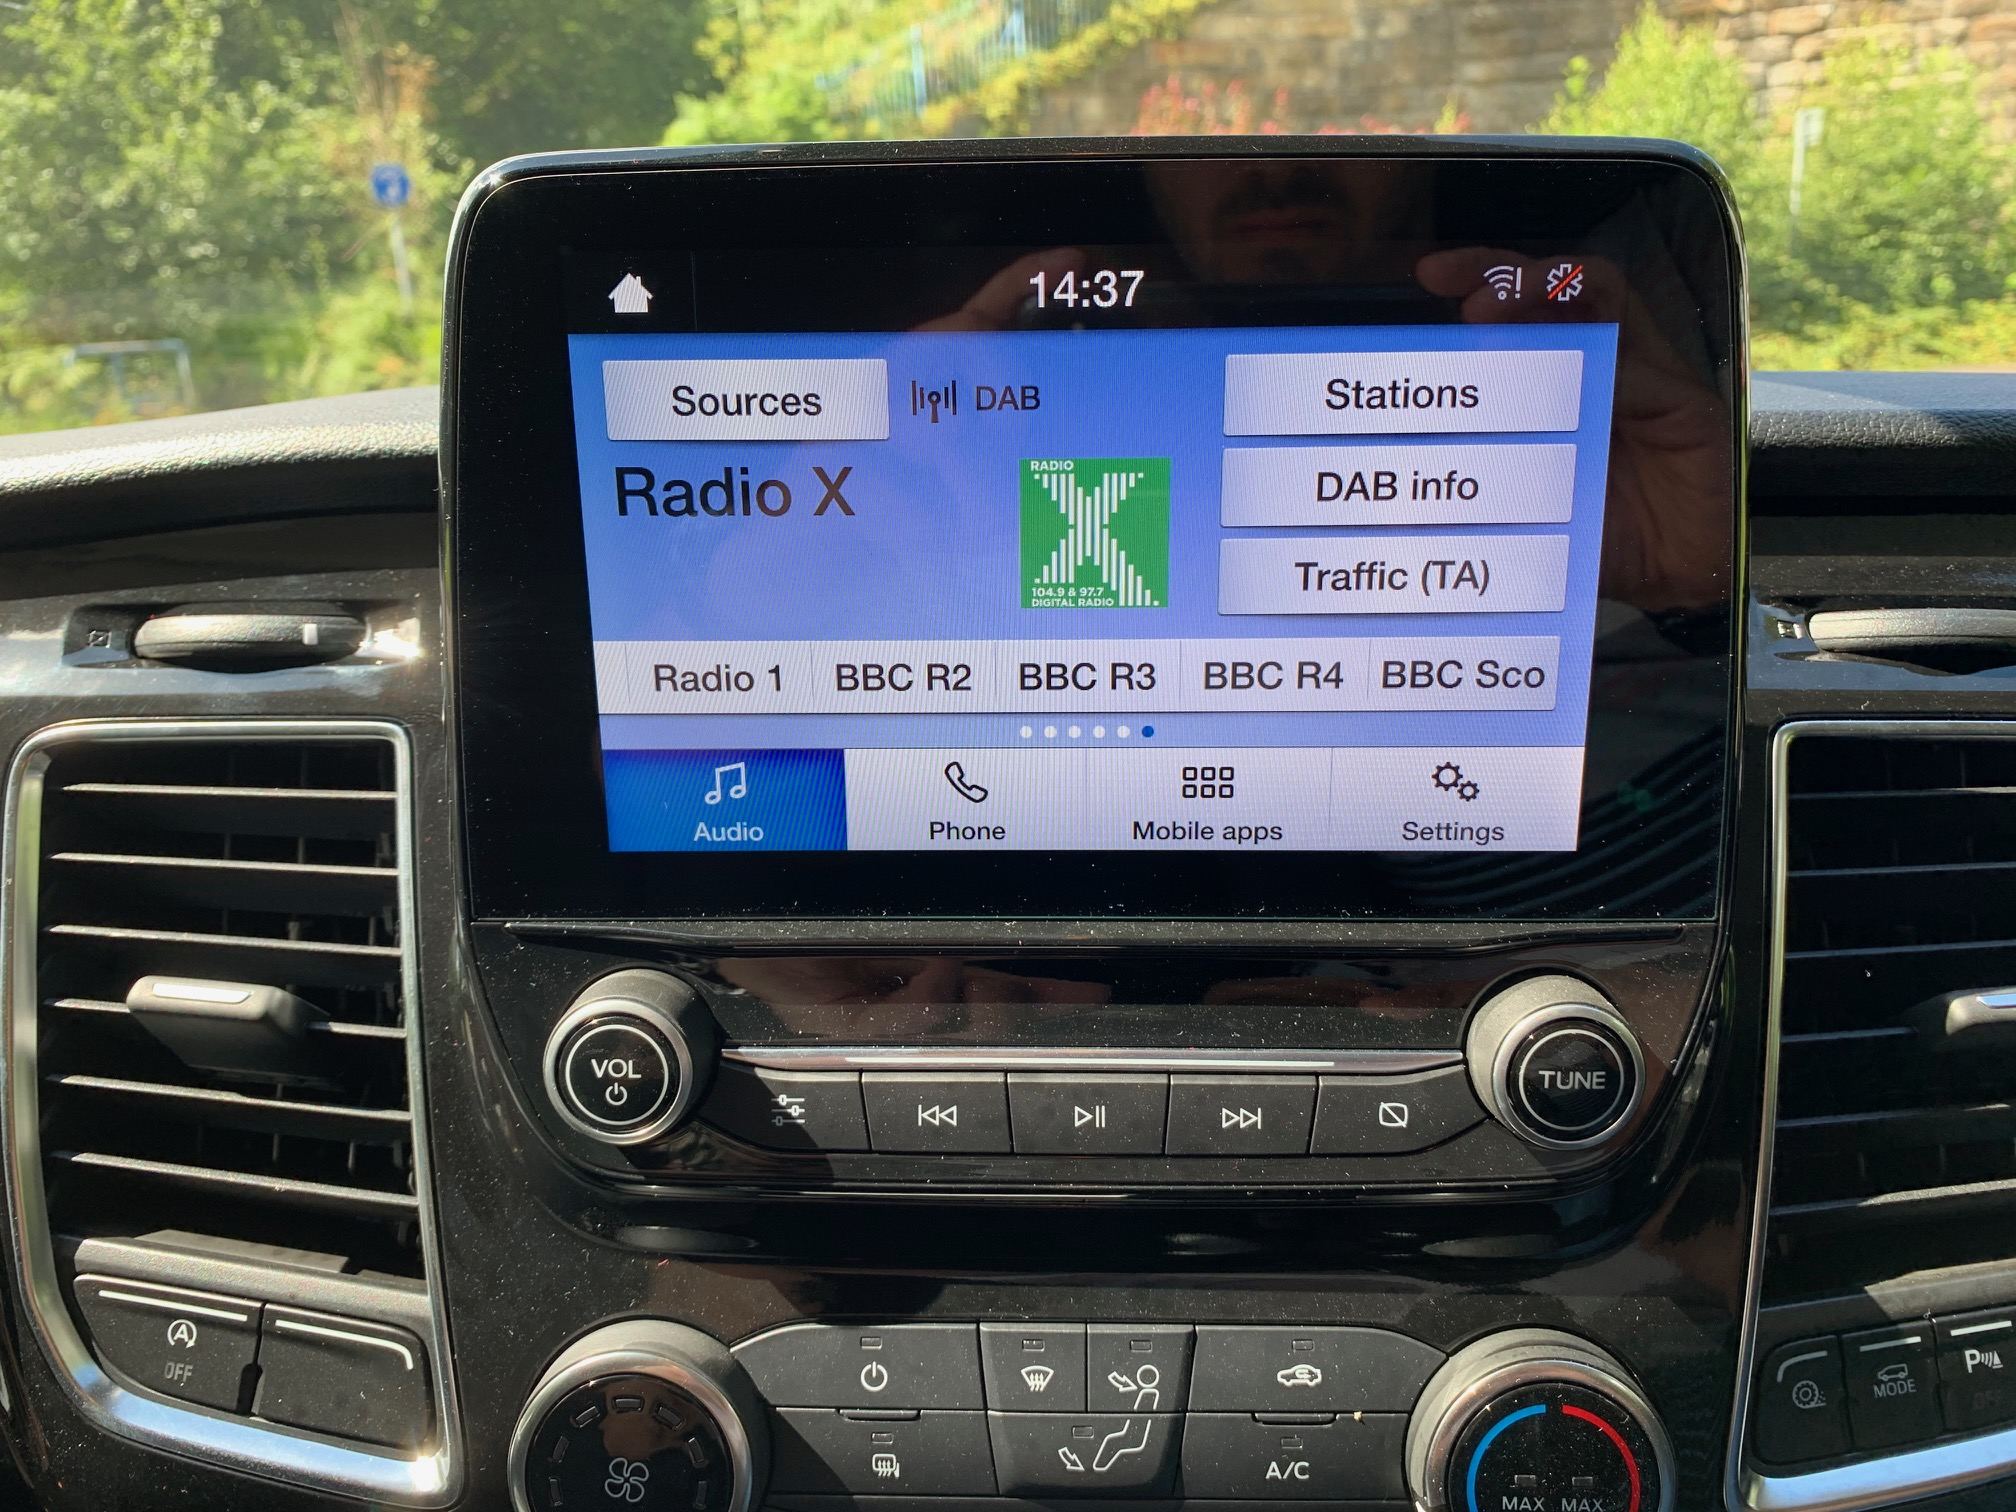 IMG_5272.jpg - Inferno X 320 L1 Double Cab In Van 2.0tdci 185 Limited Auto